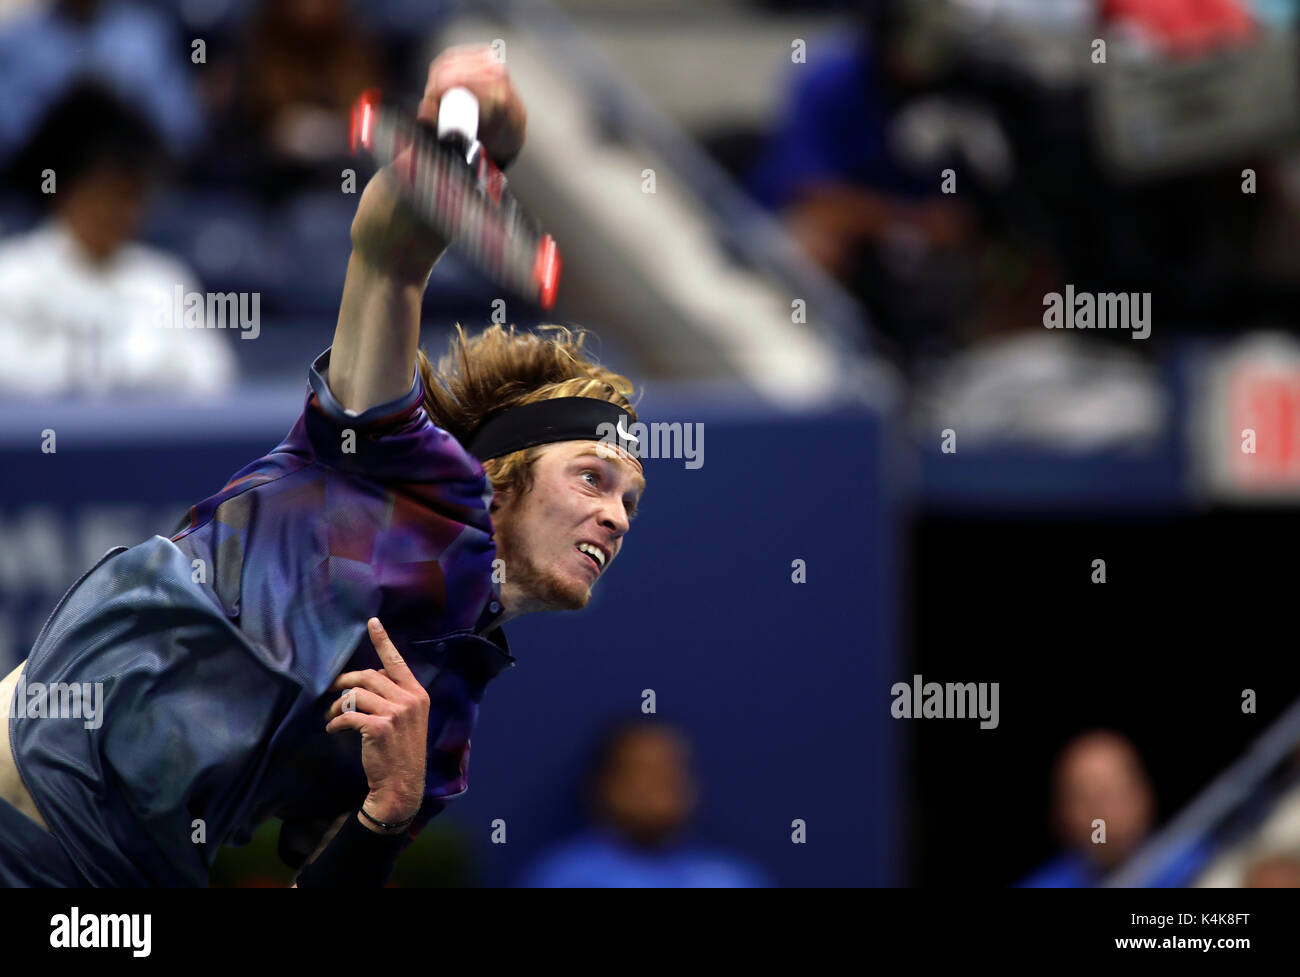 New York, United States. 06th Sep, 2017. US Open Tennis: New York, 6 September, 2017 - Andrey Rublev of Russia serves - Stock Image